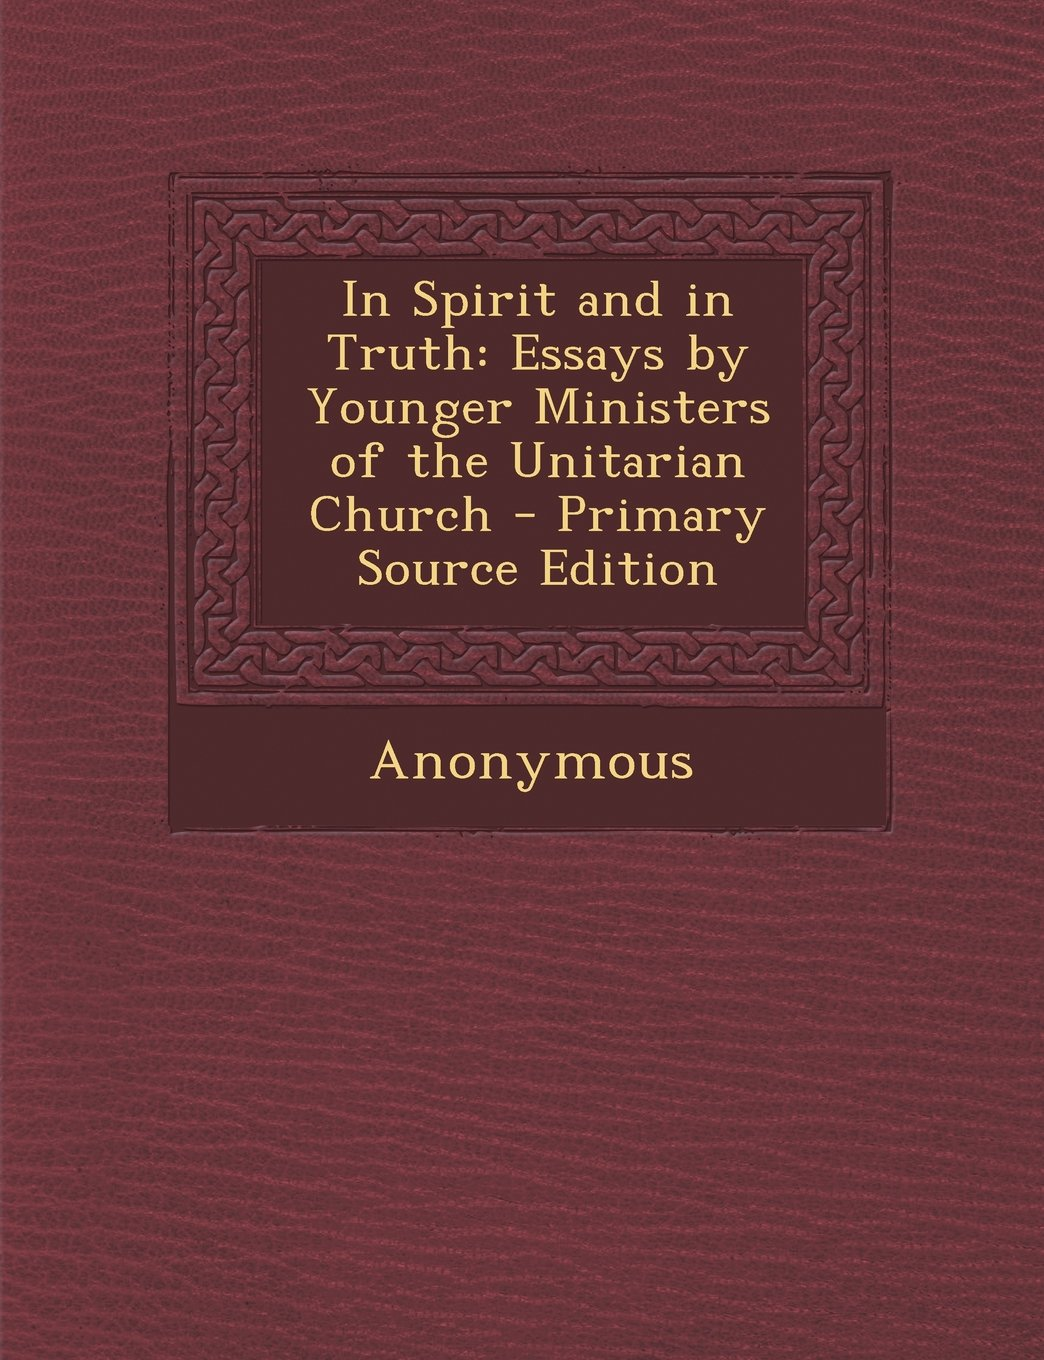 Download In Spirit and in Truth: Essays by Younger Ministers of the Unitarian Church - Primary Source Edition pdf